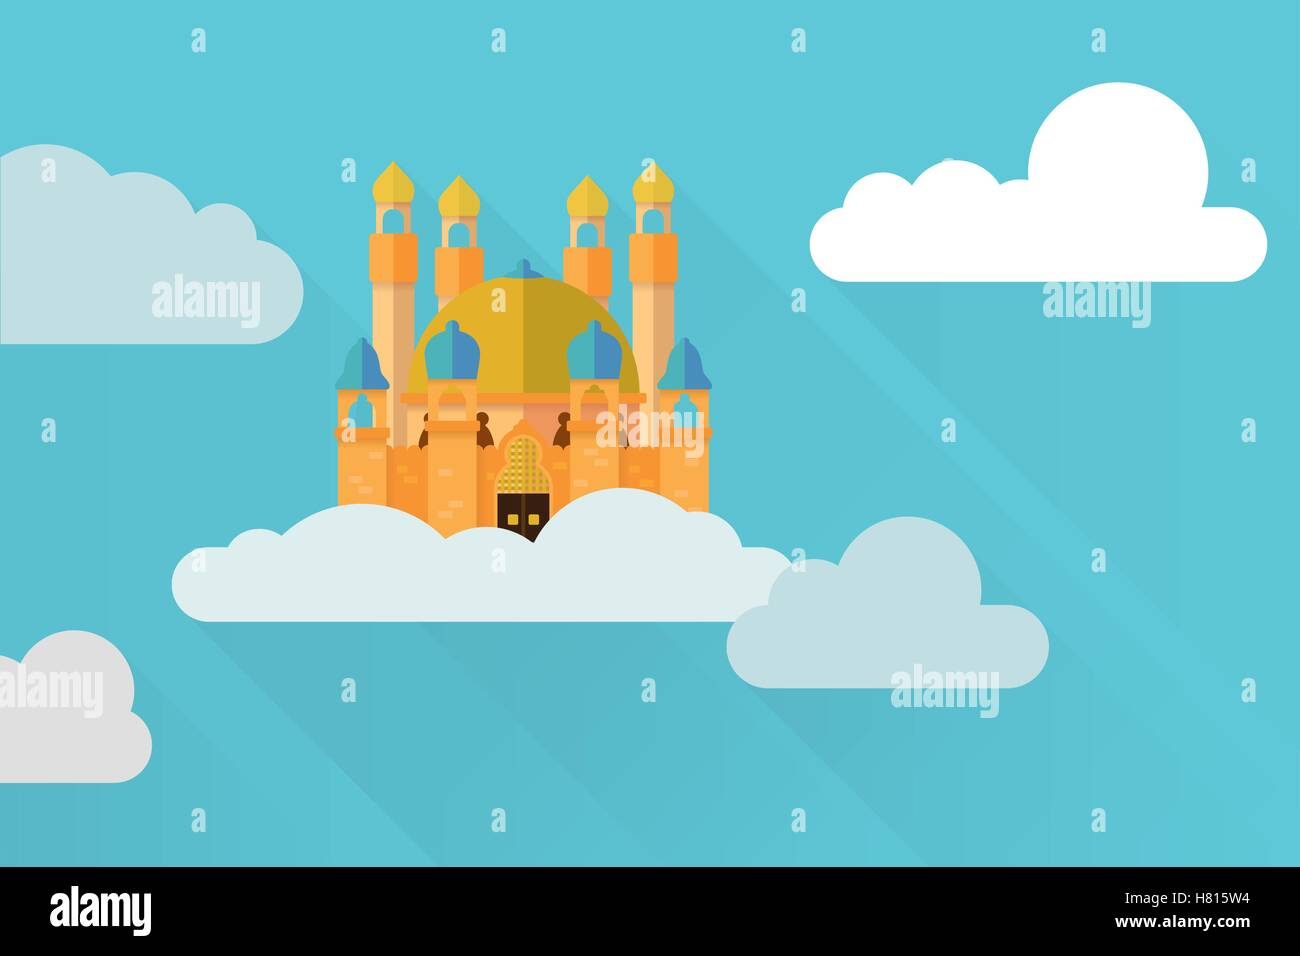 Flat design fantasy castle in the sky vector illustration - Stock Image